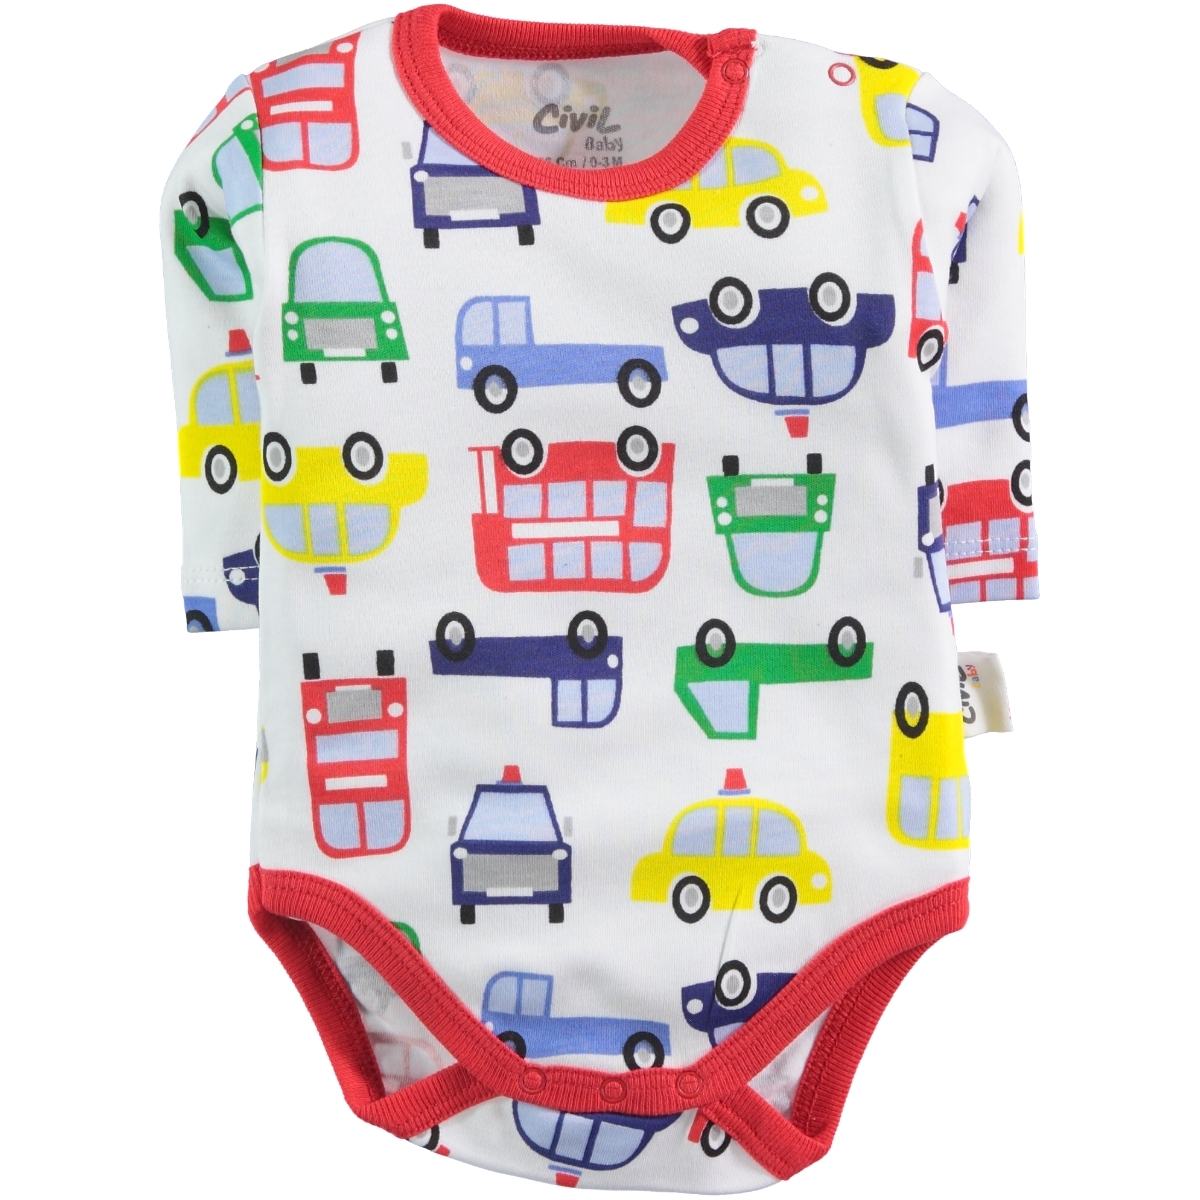 Civil Baby 0-24 Months Baby Boy Red Bodysuit With Snaps